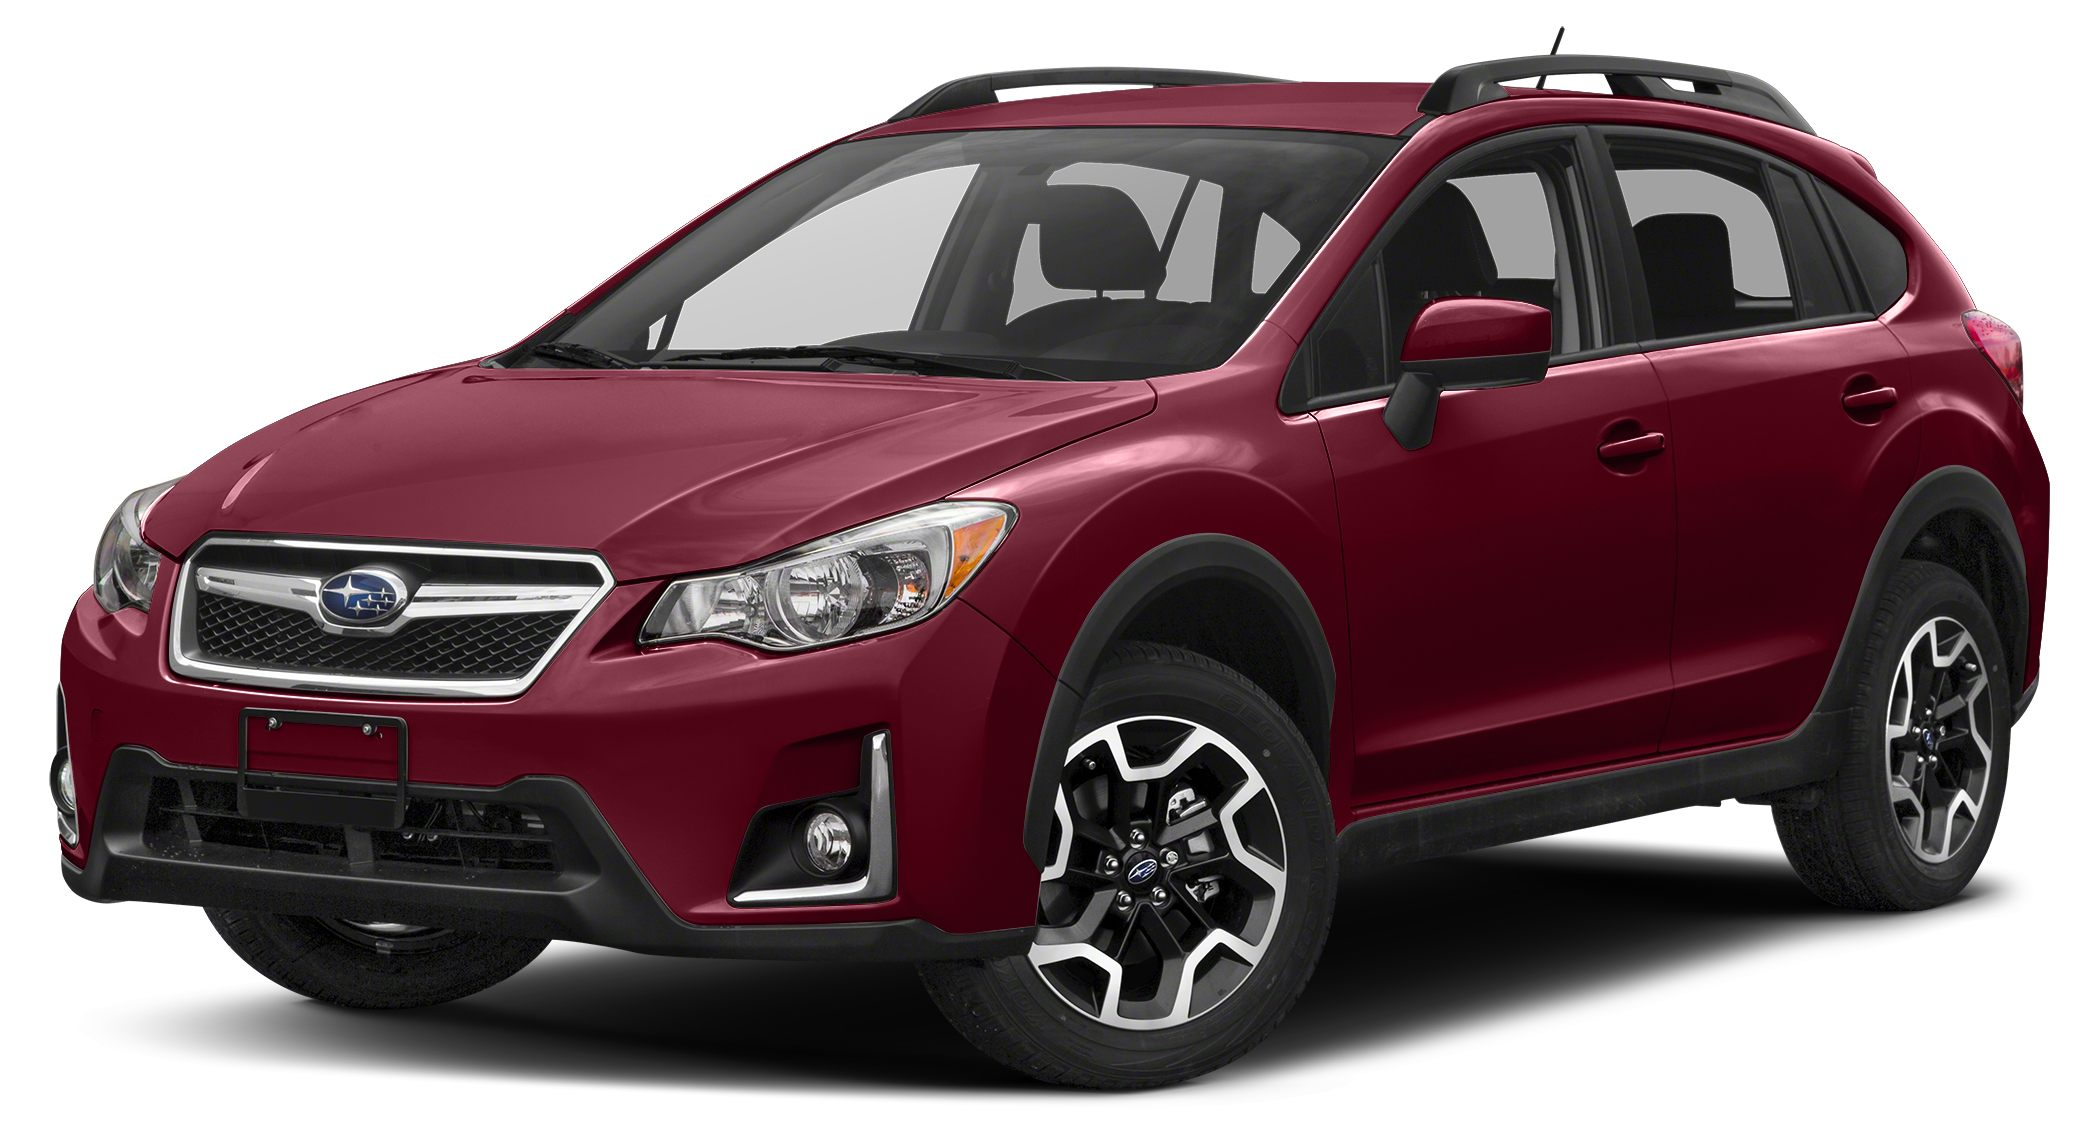 2016 Subaru Crosstrek 20i Premium Recent Arrival3426 HighwayCity MPGAwards 2016 IIHS Top Saf